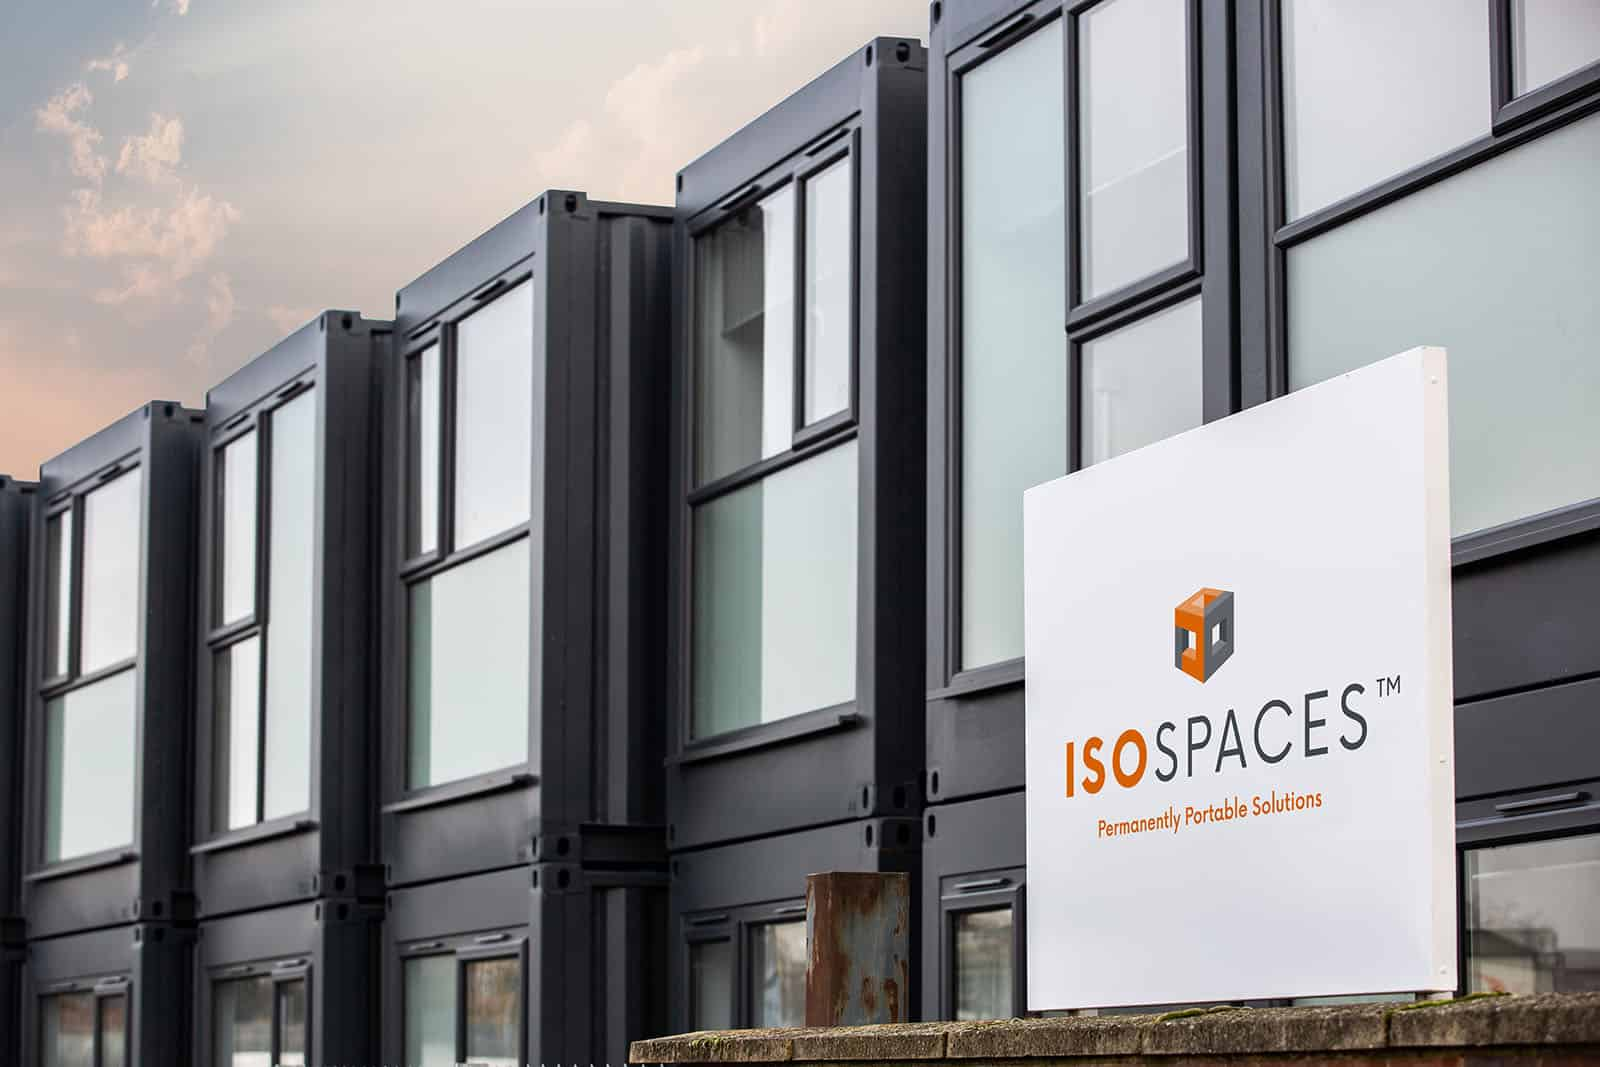 isospaces based in cornwall and factory in tonbridge